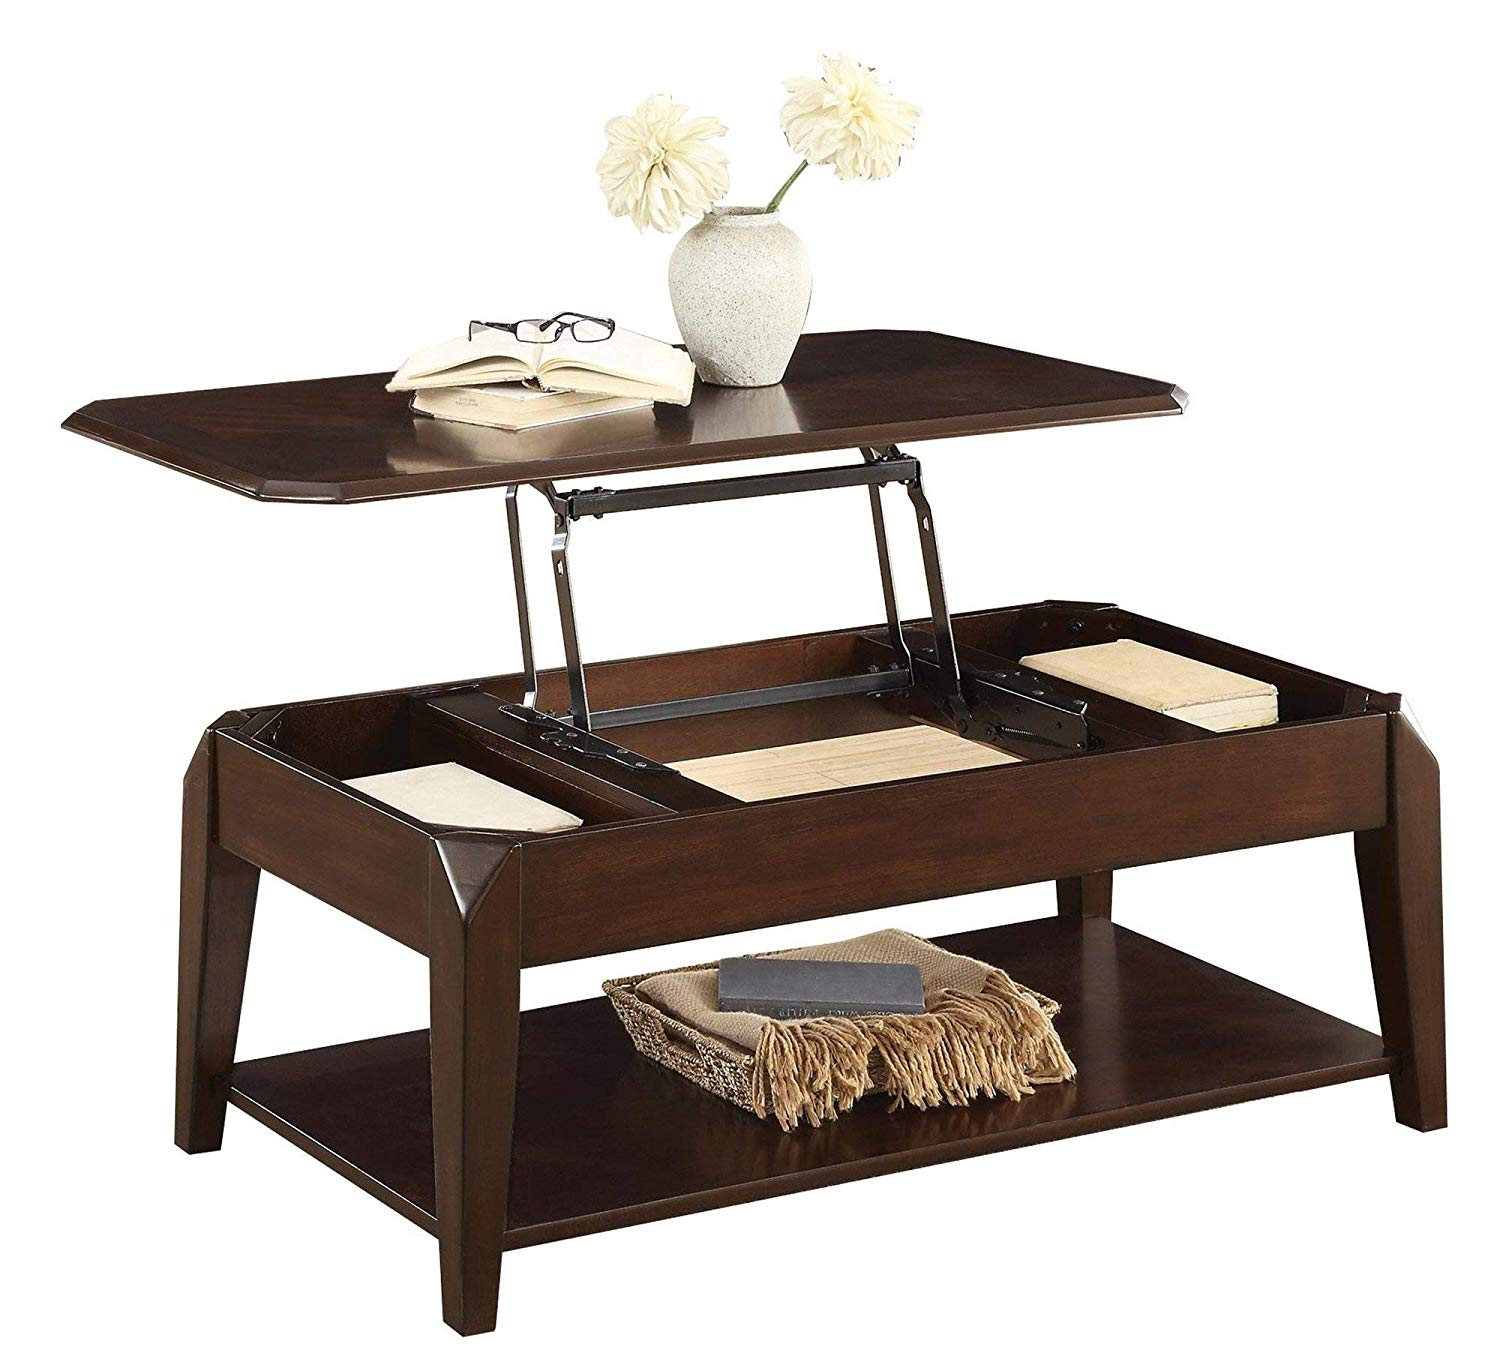 Schmier Modern Cocktail Table with Lift Top on Casters in Warm Cherry